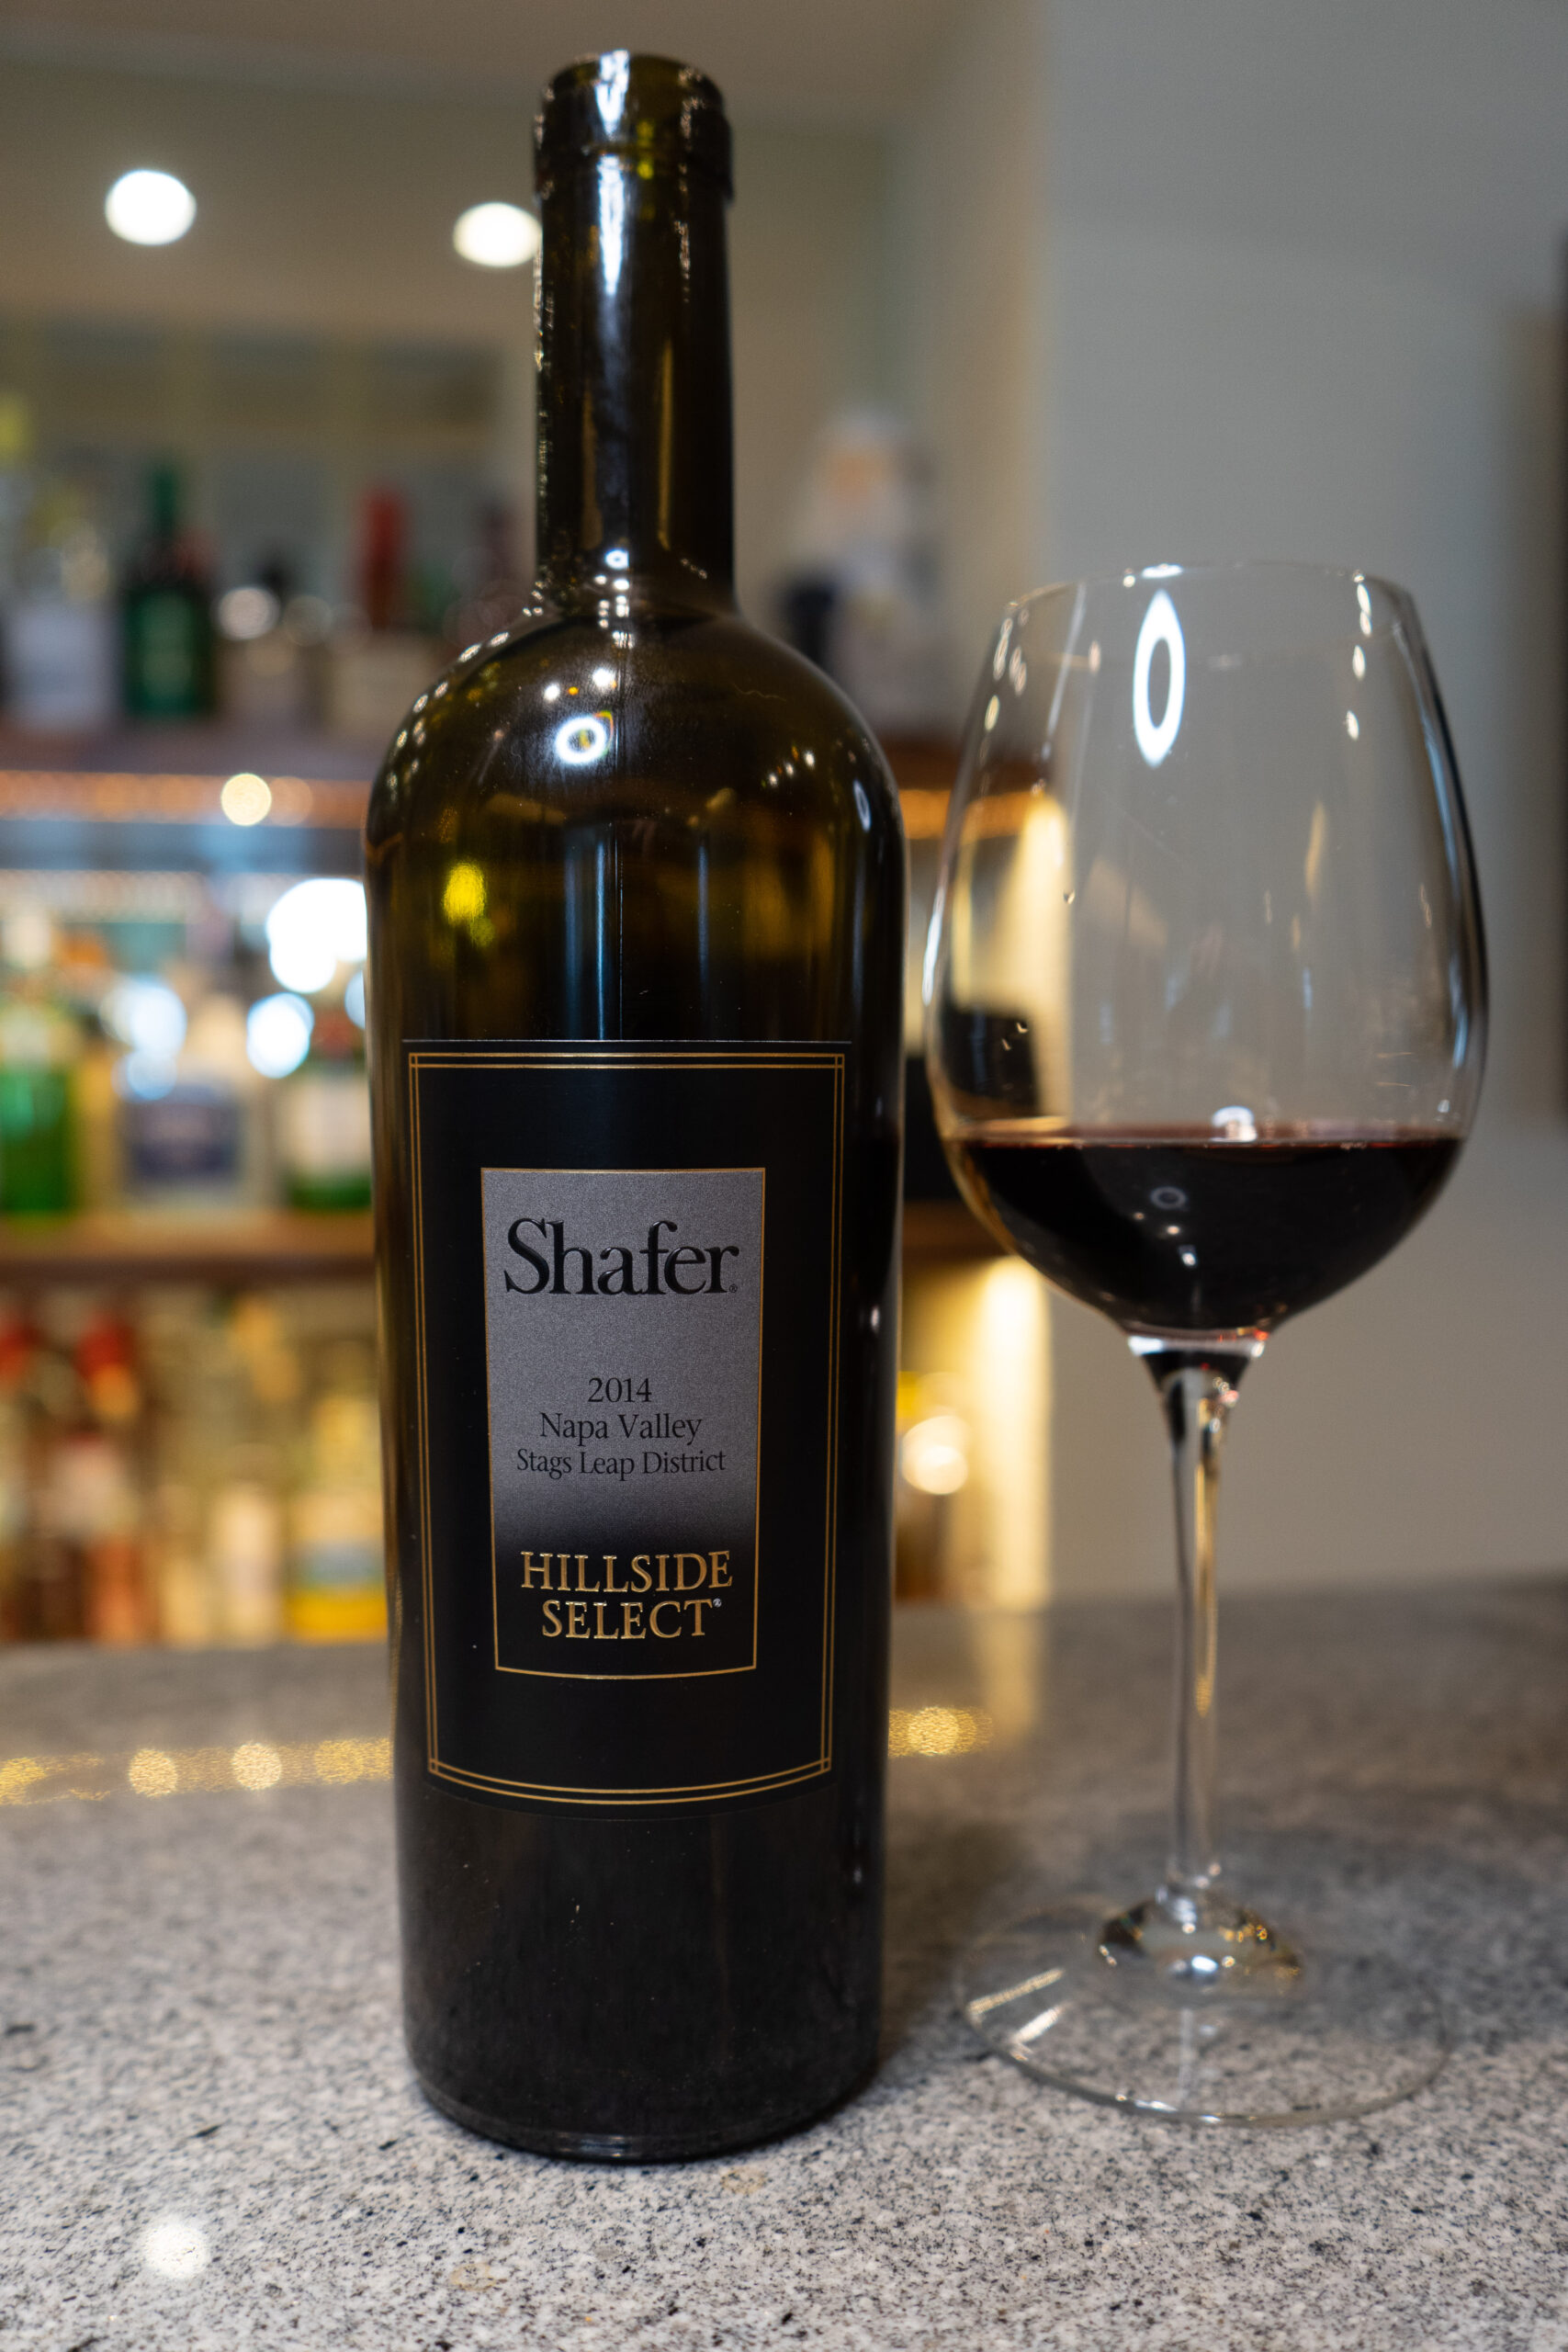 Shafer 2014 Napa Valley | The Wine Club Philippines